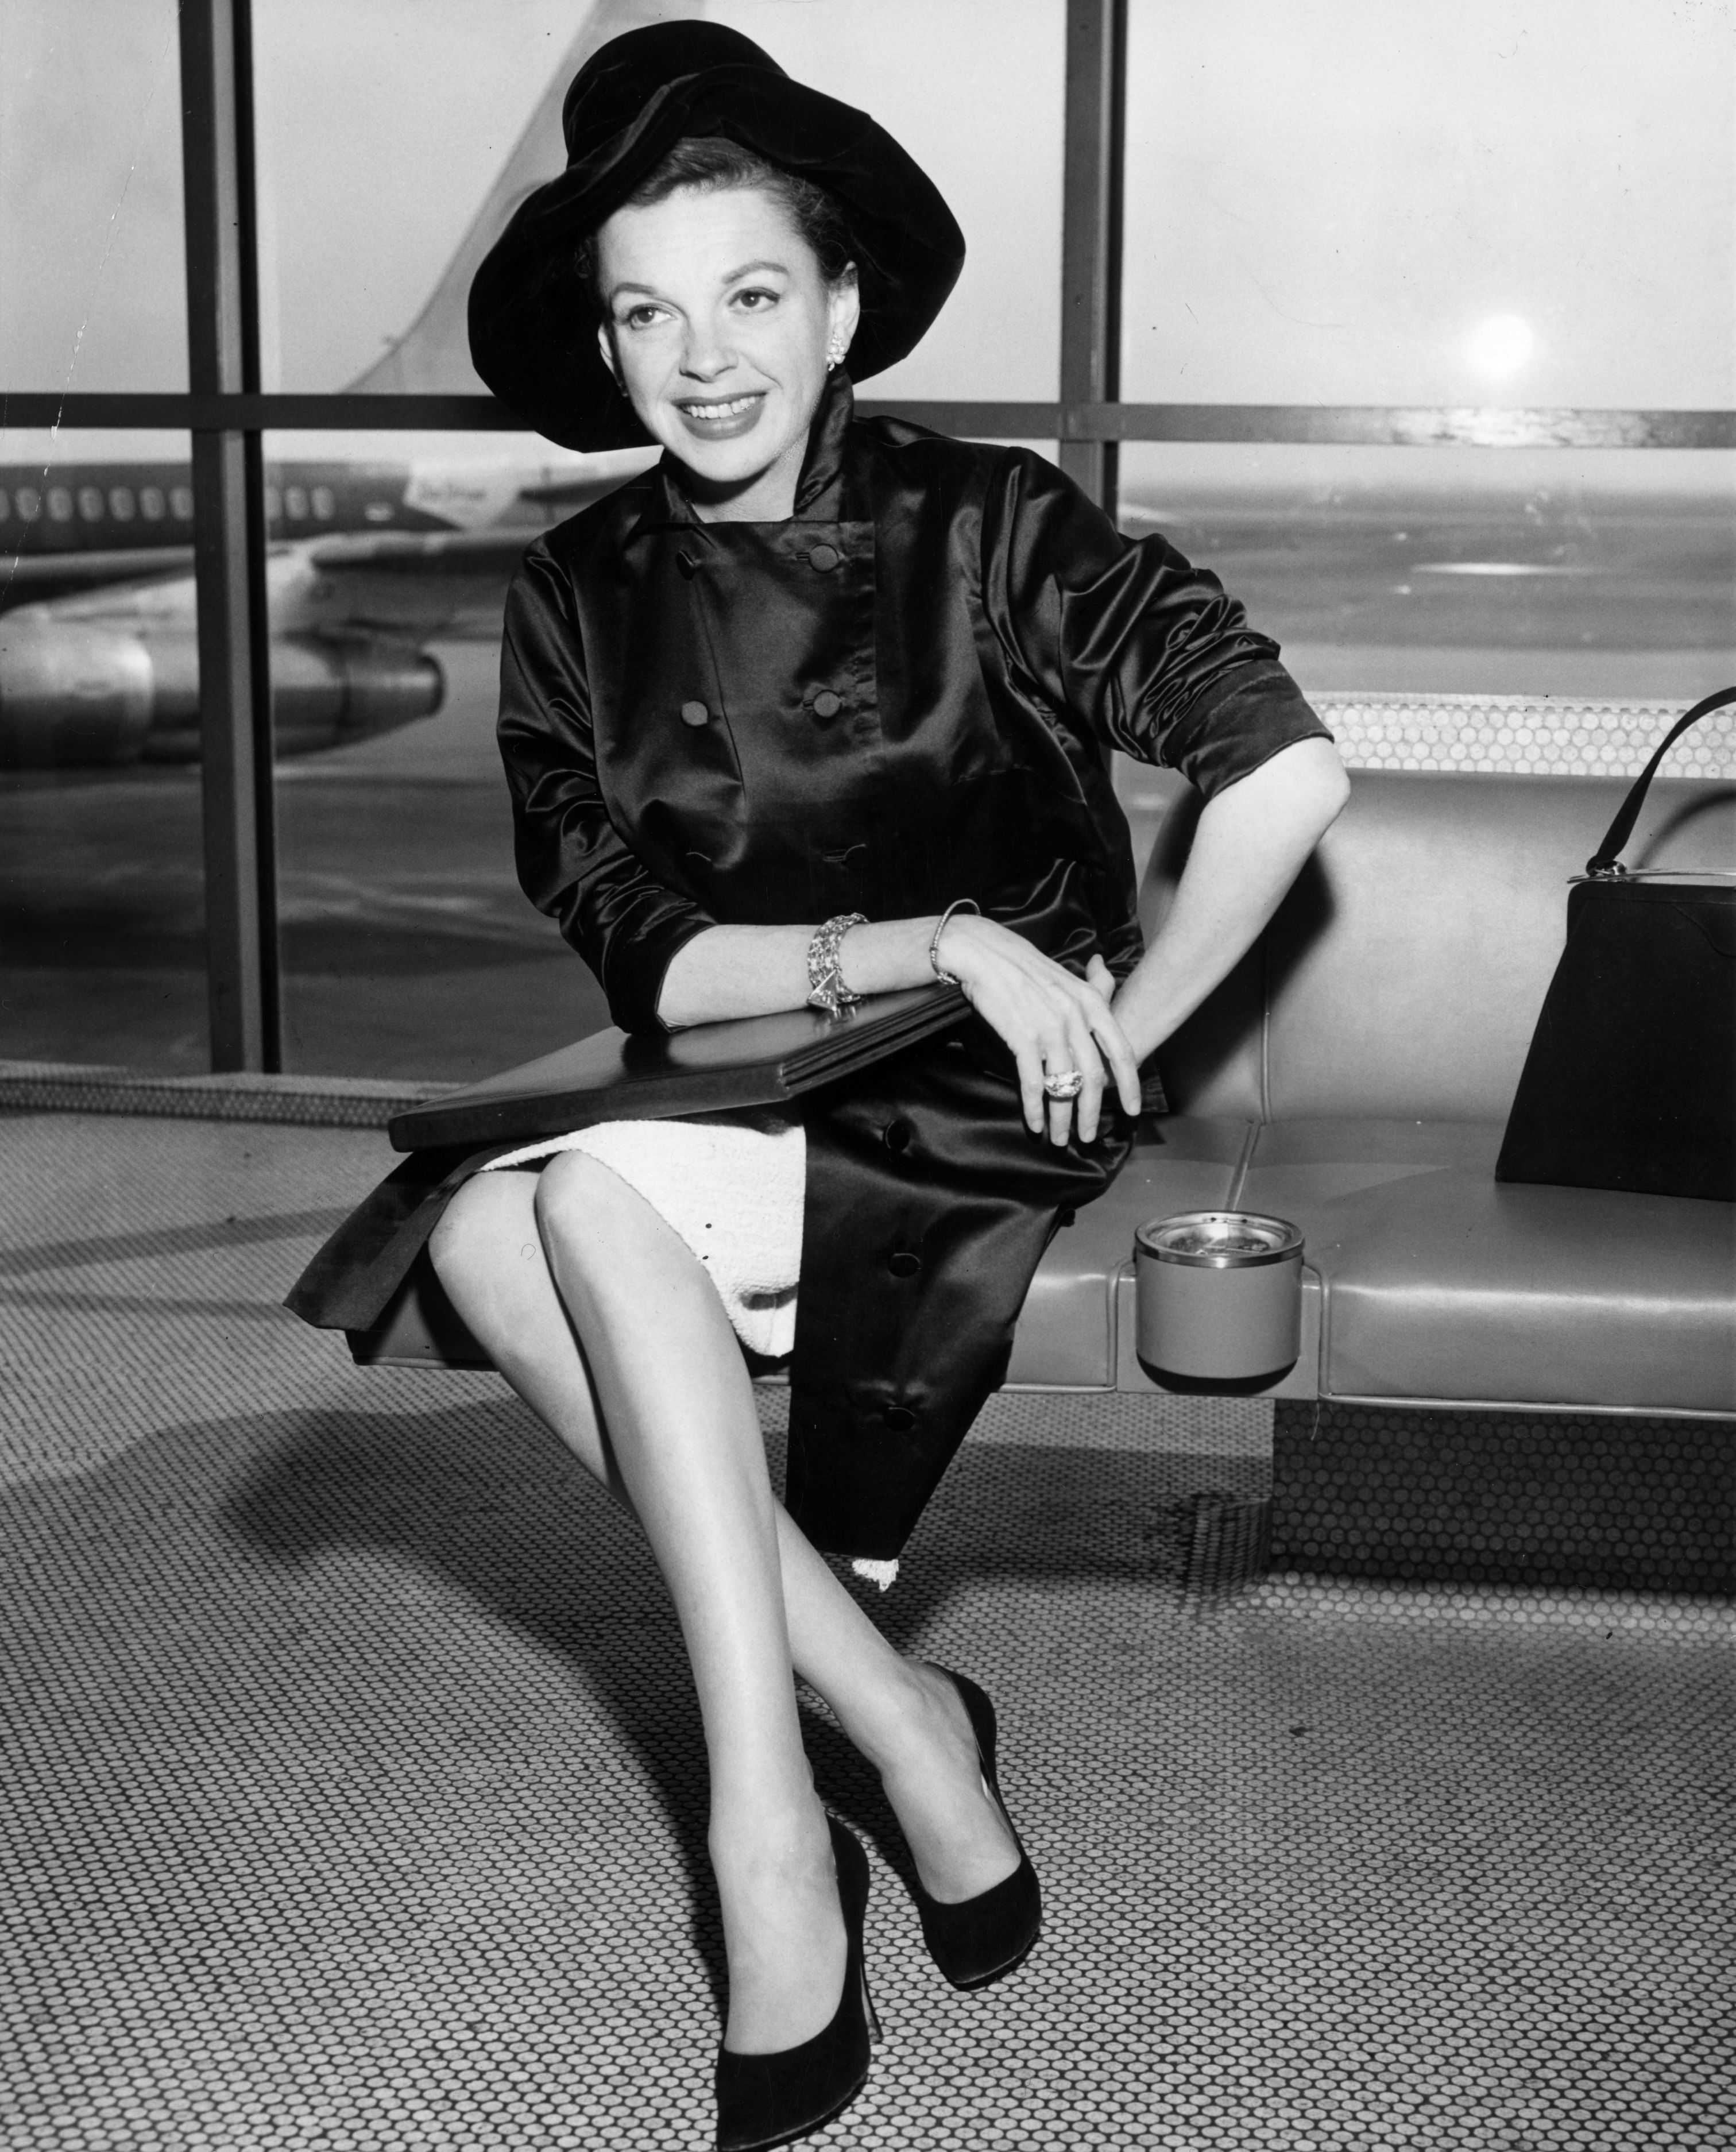 Judy Garland (1922 - 1969) photographed at an airport, circa 1955. | Source: Getty Images